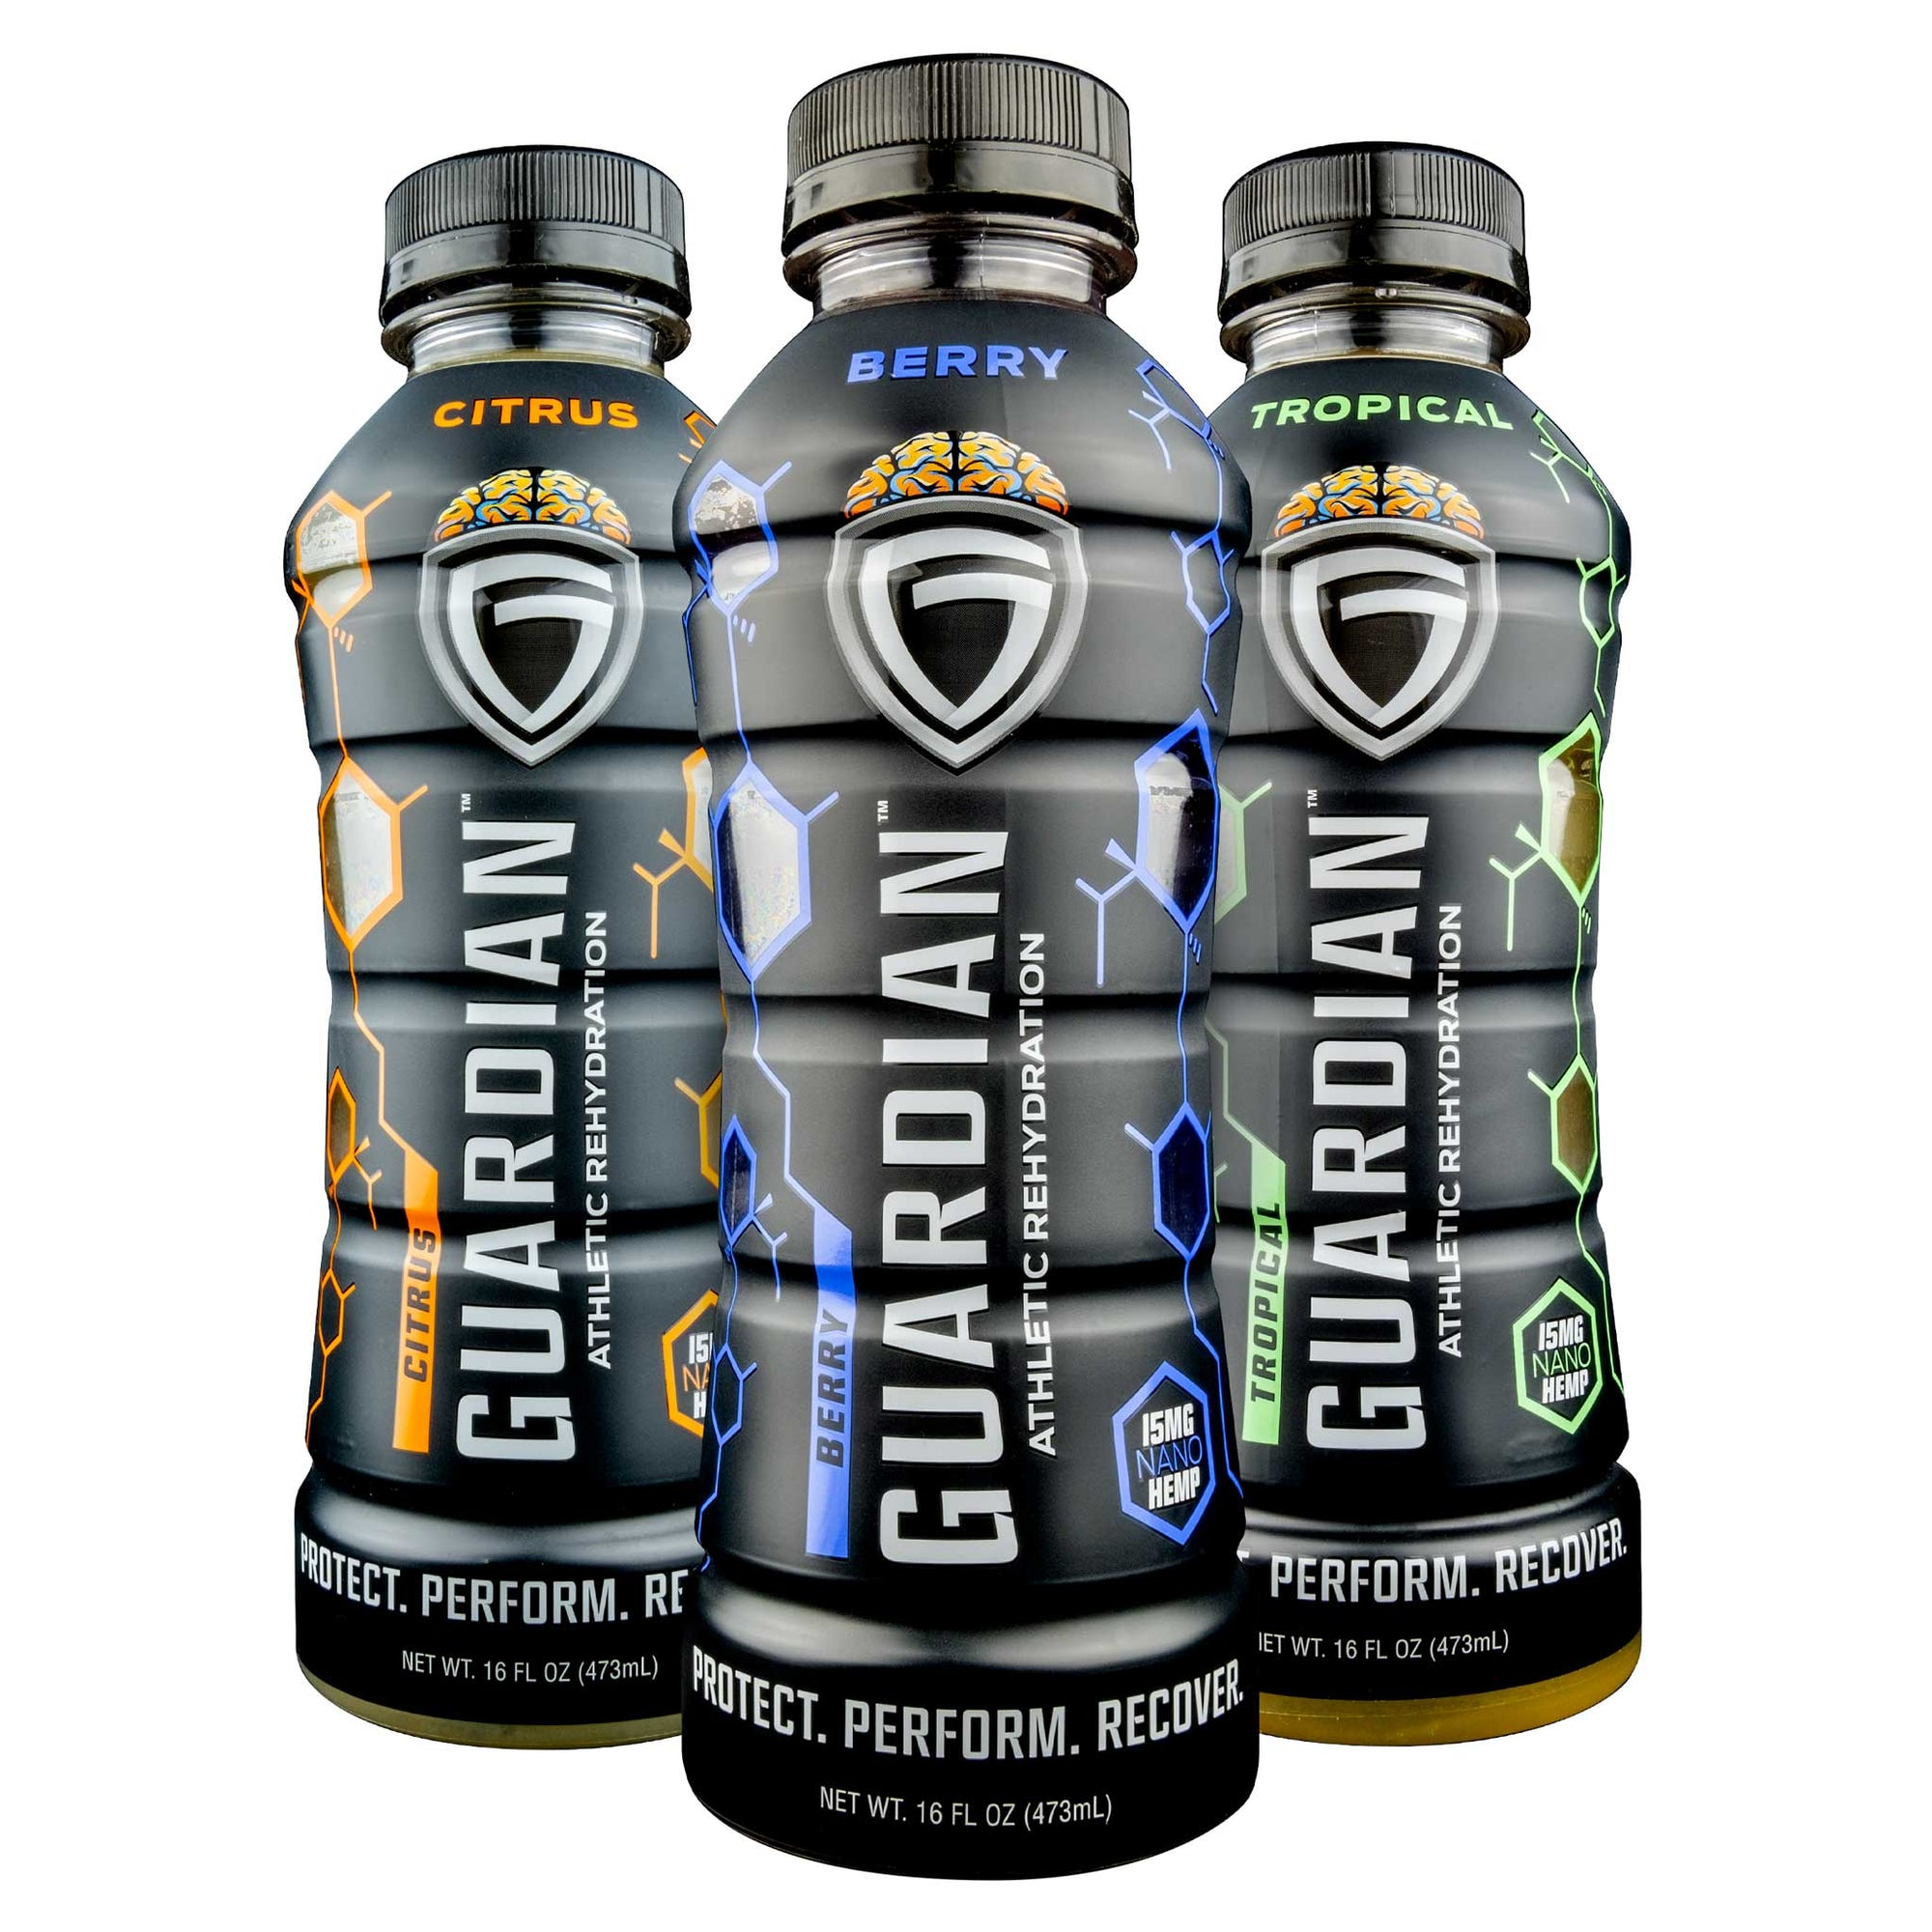 Guardian Variety 6 Pack - Tropical, Berry, and Citrus